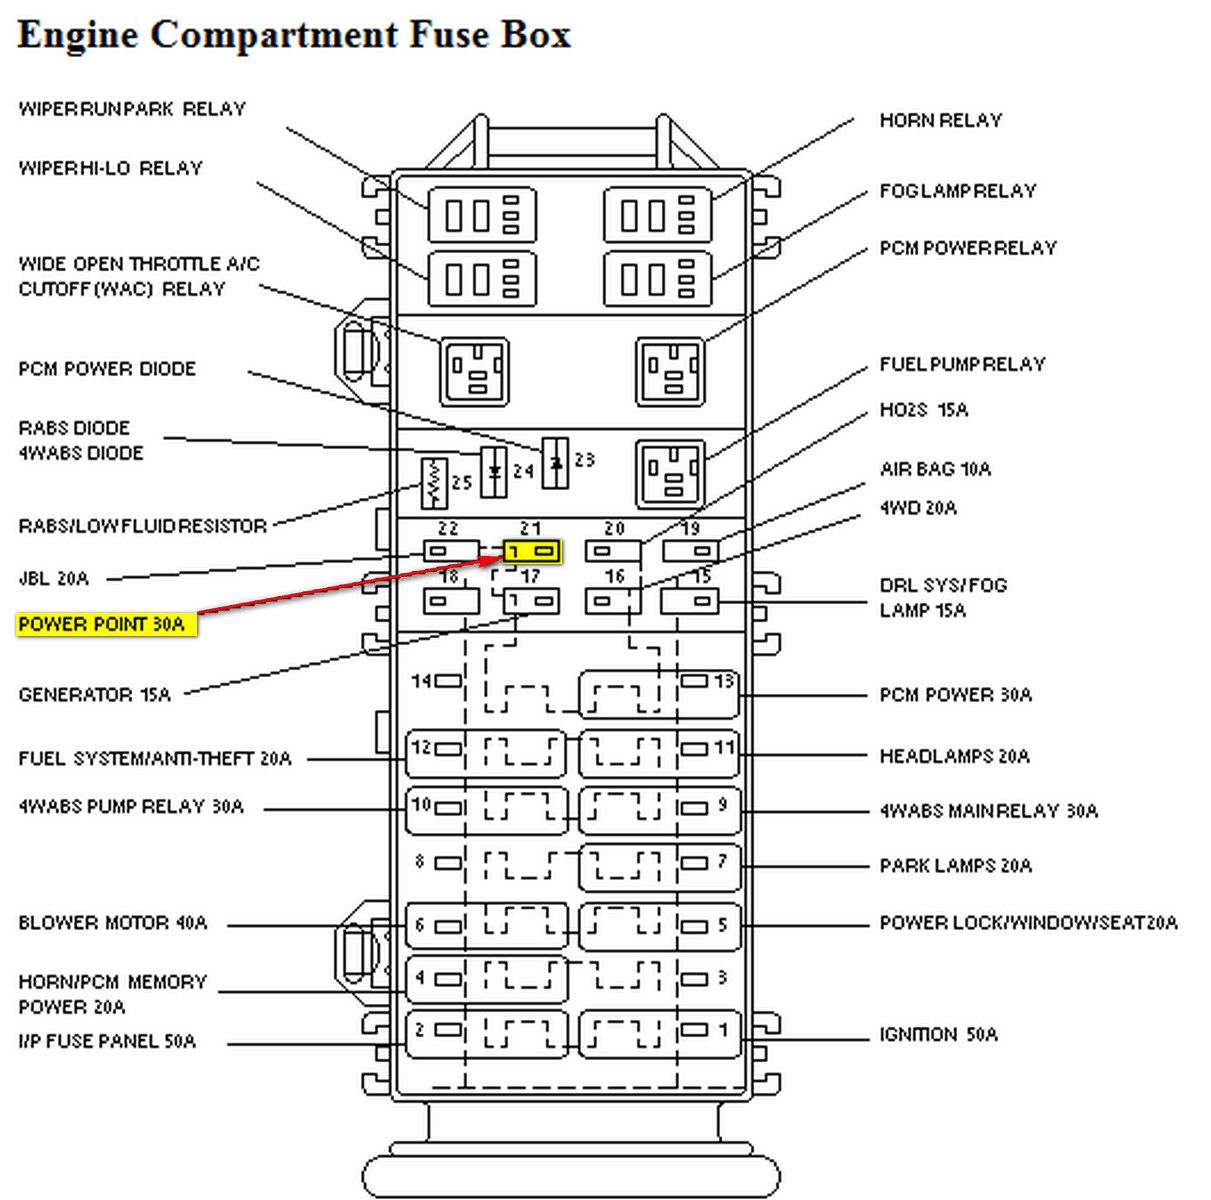 small resolution of wrg 4838 2002 ford f 150 fx4 fuse panel diagram1996 f250 fuse box diagram